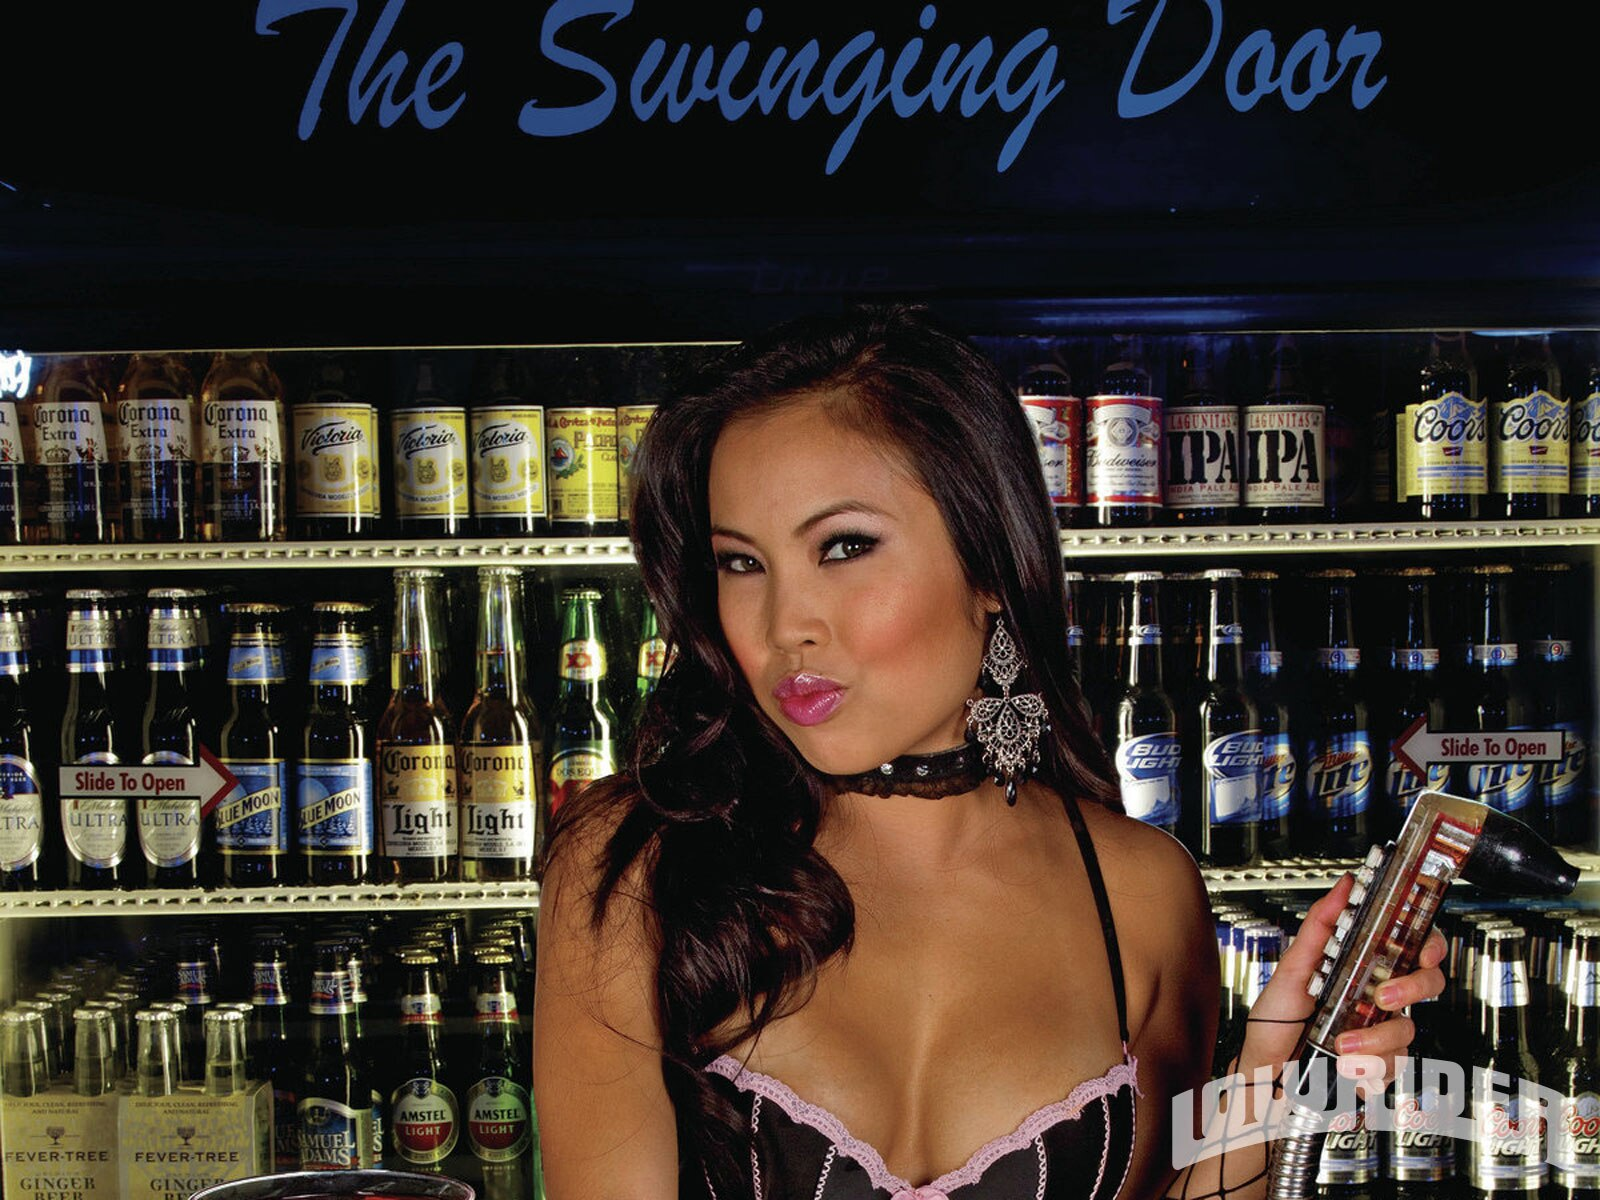 1109-lrms-01-ih-thuy-li-the-swinging-door